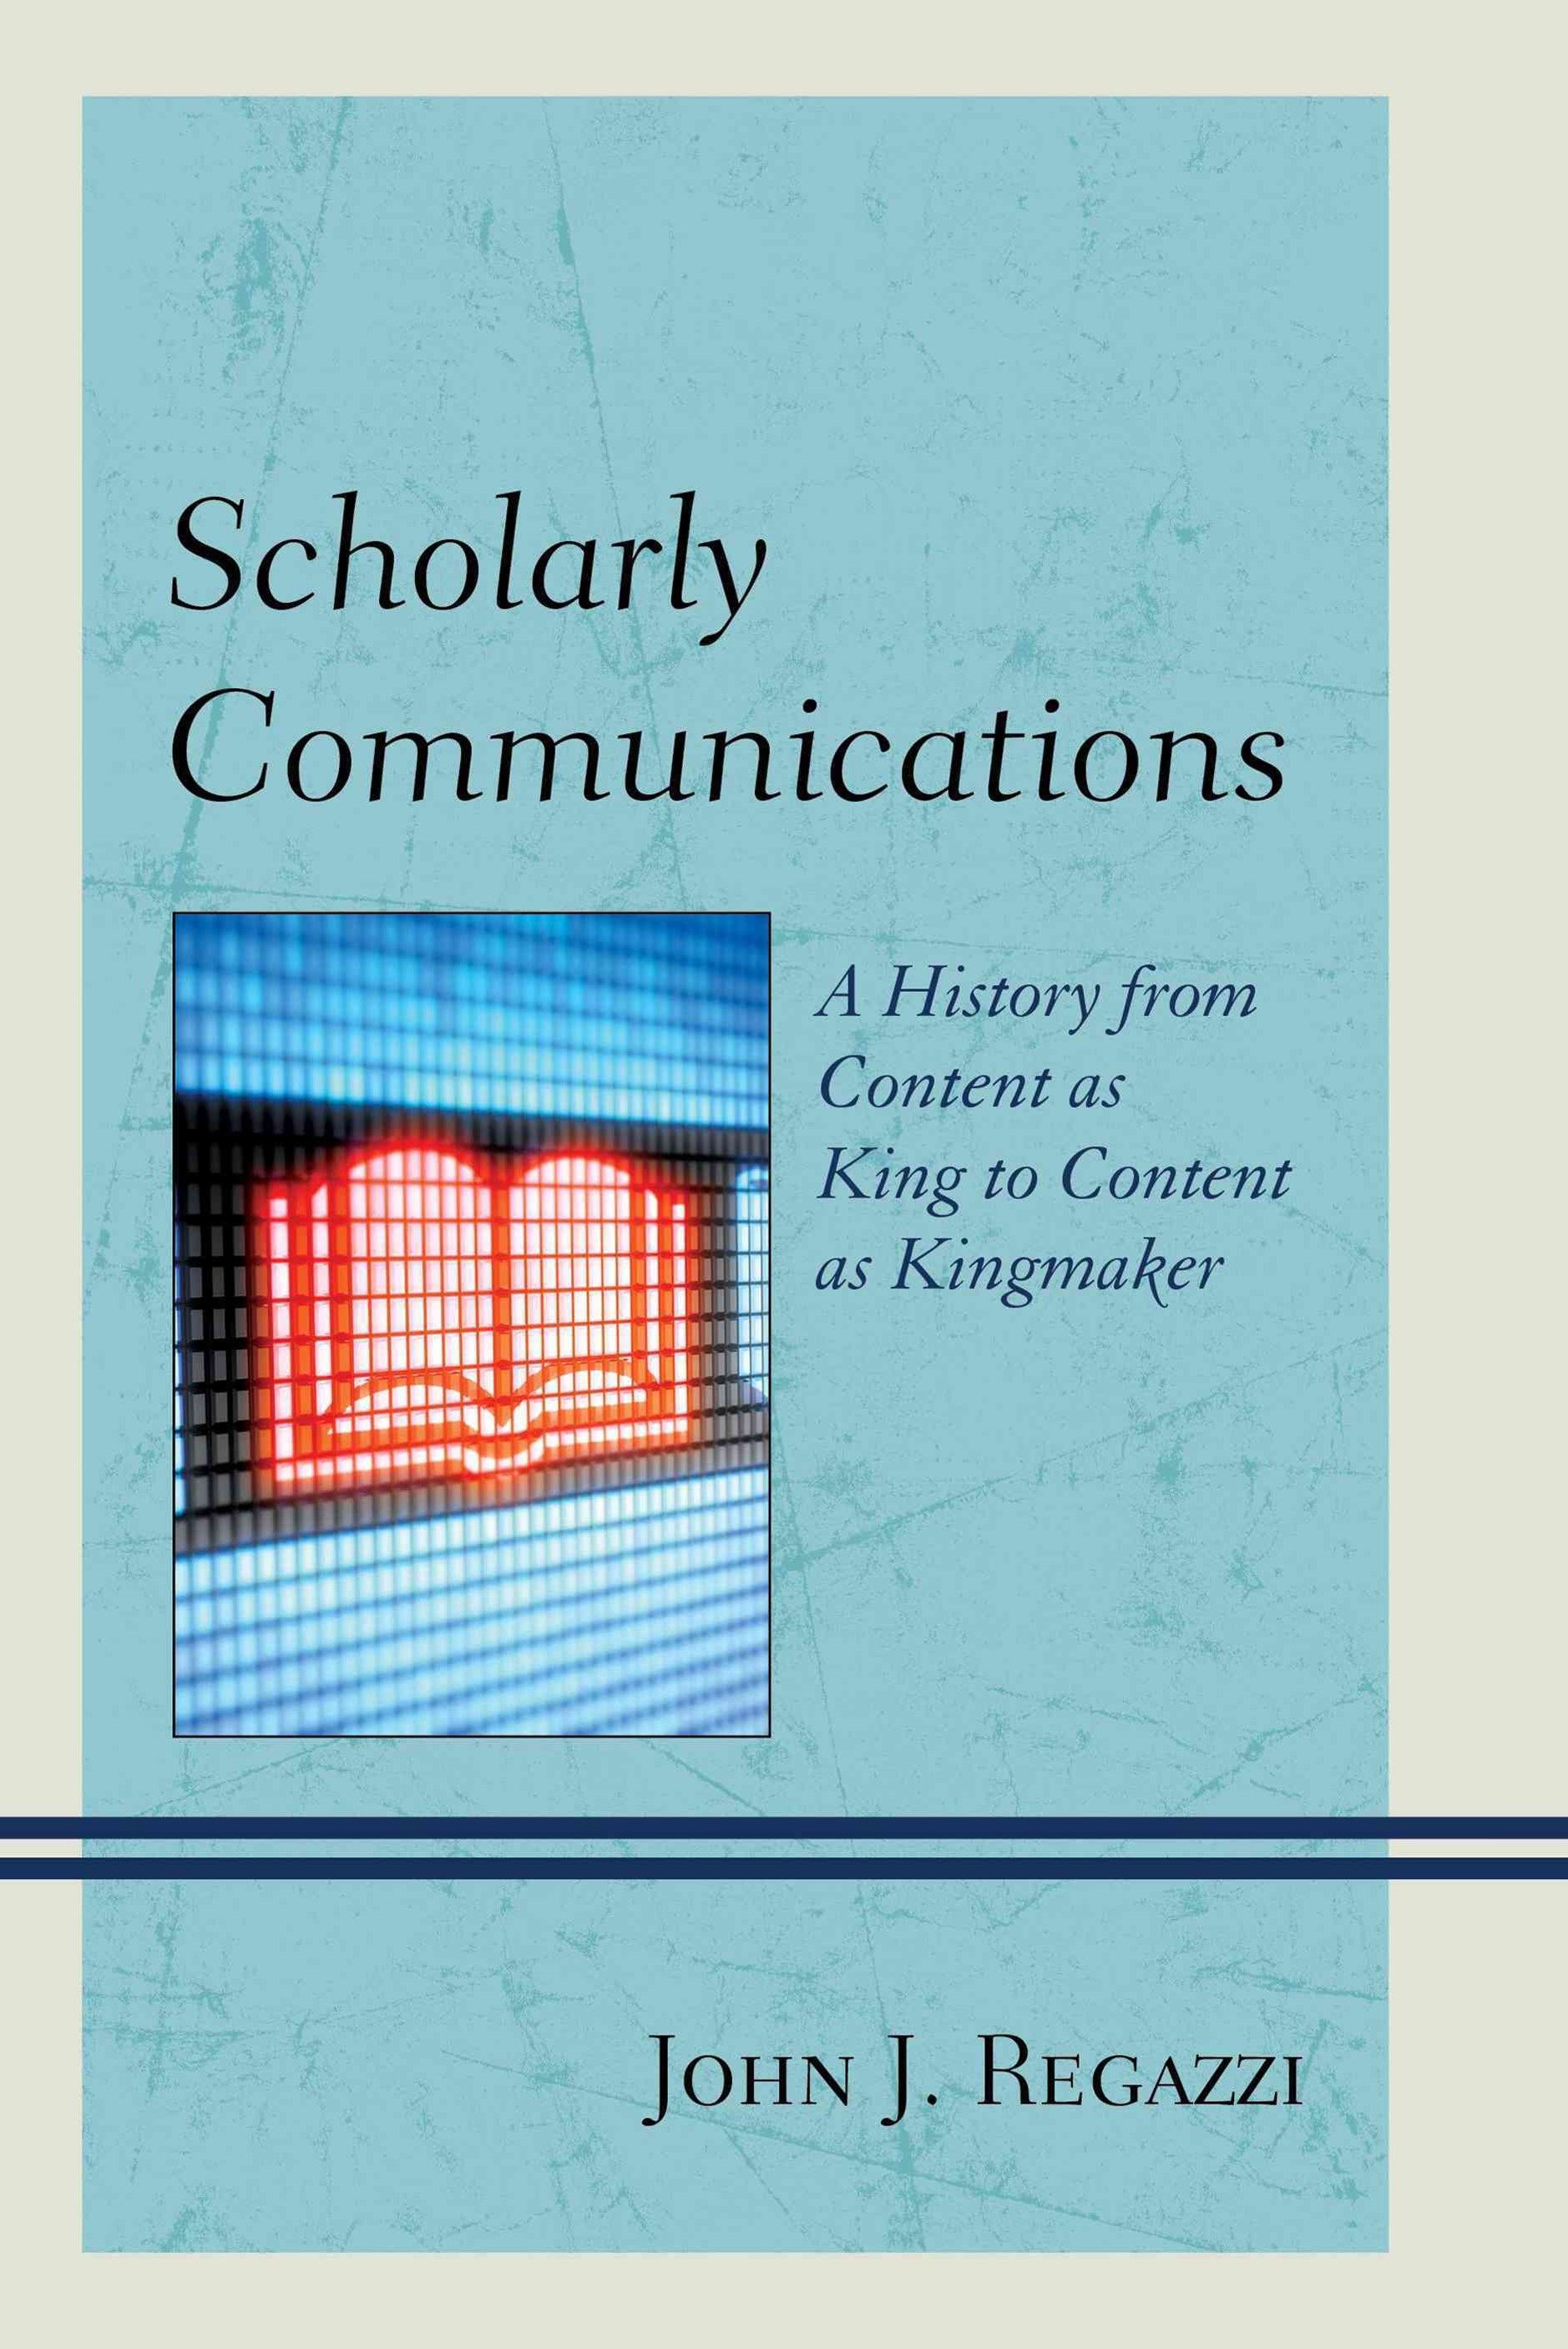 Scholarly Communications